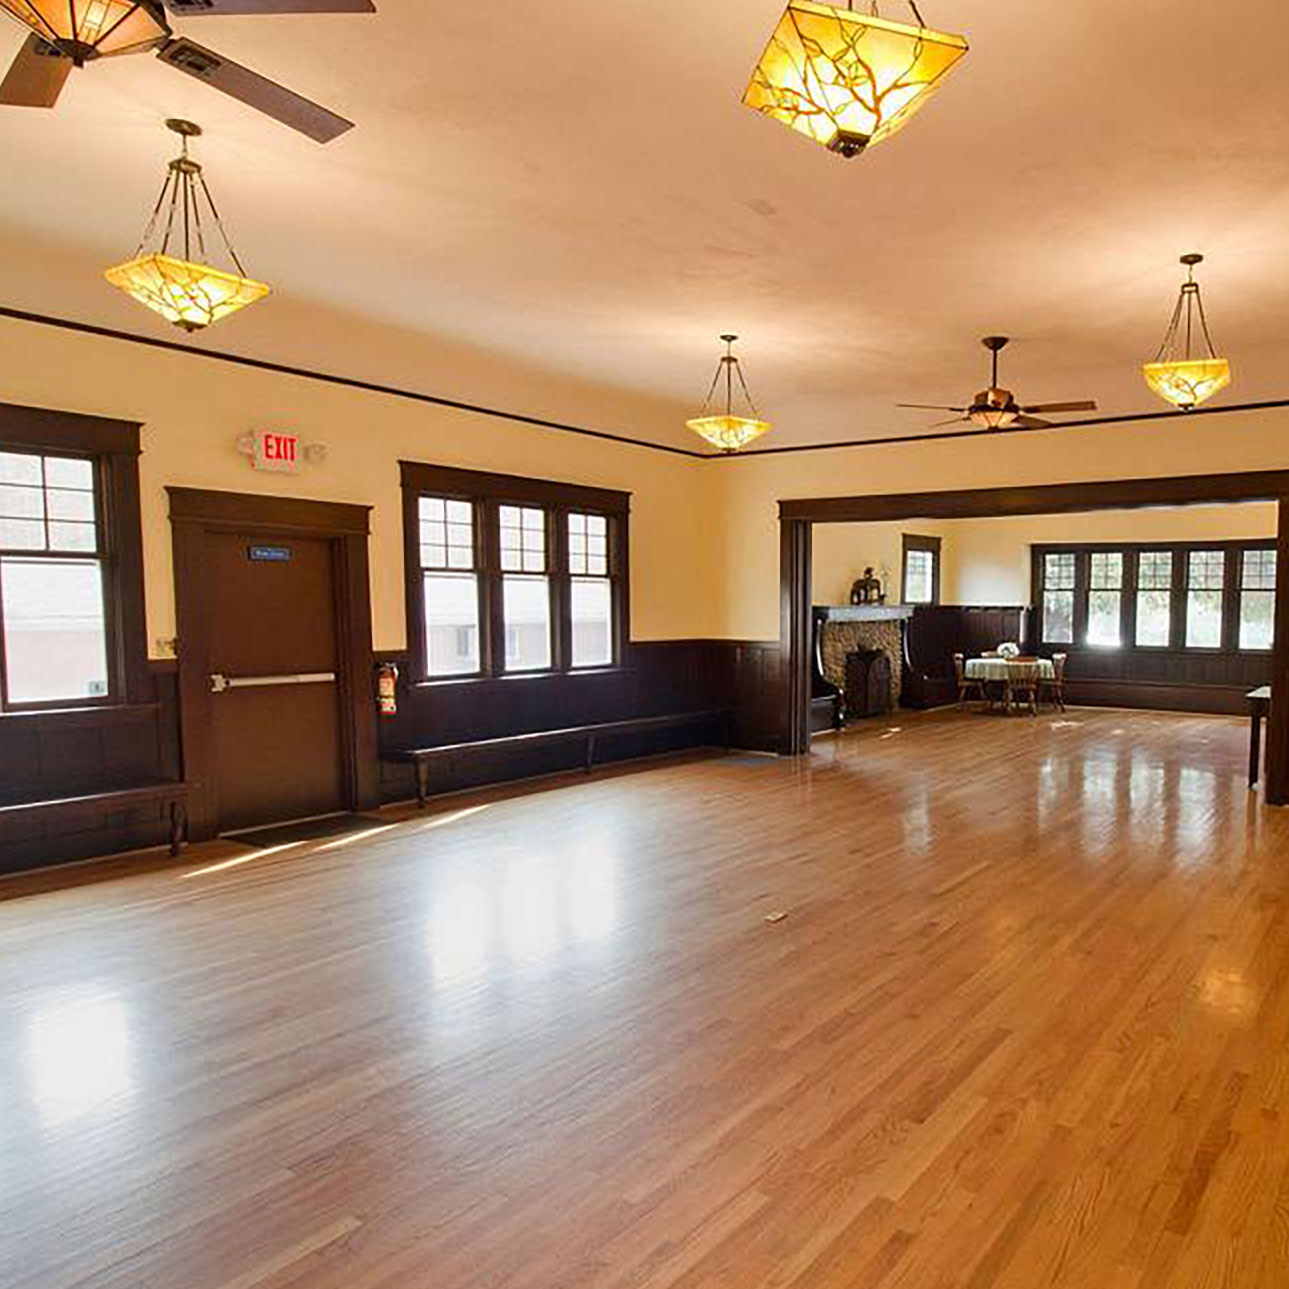 SanJoseClubhouse_venue_03_opt.jpg